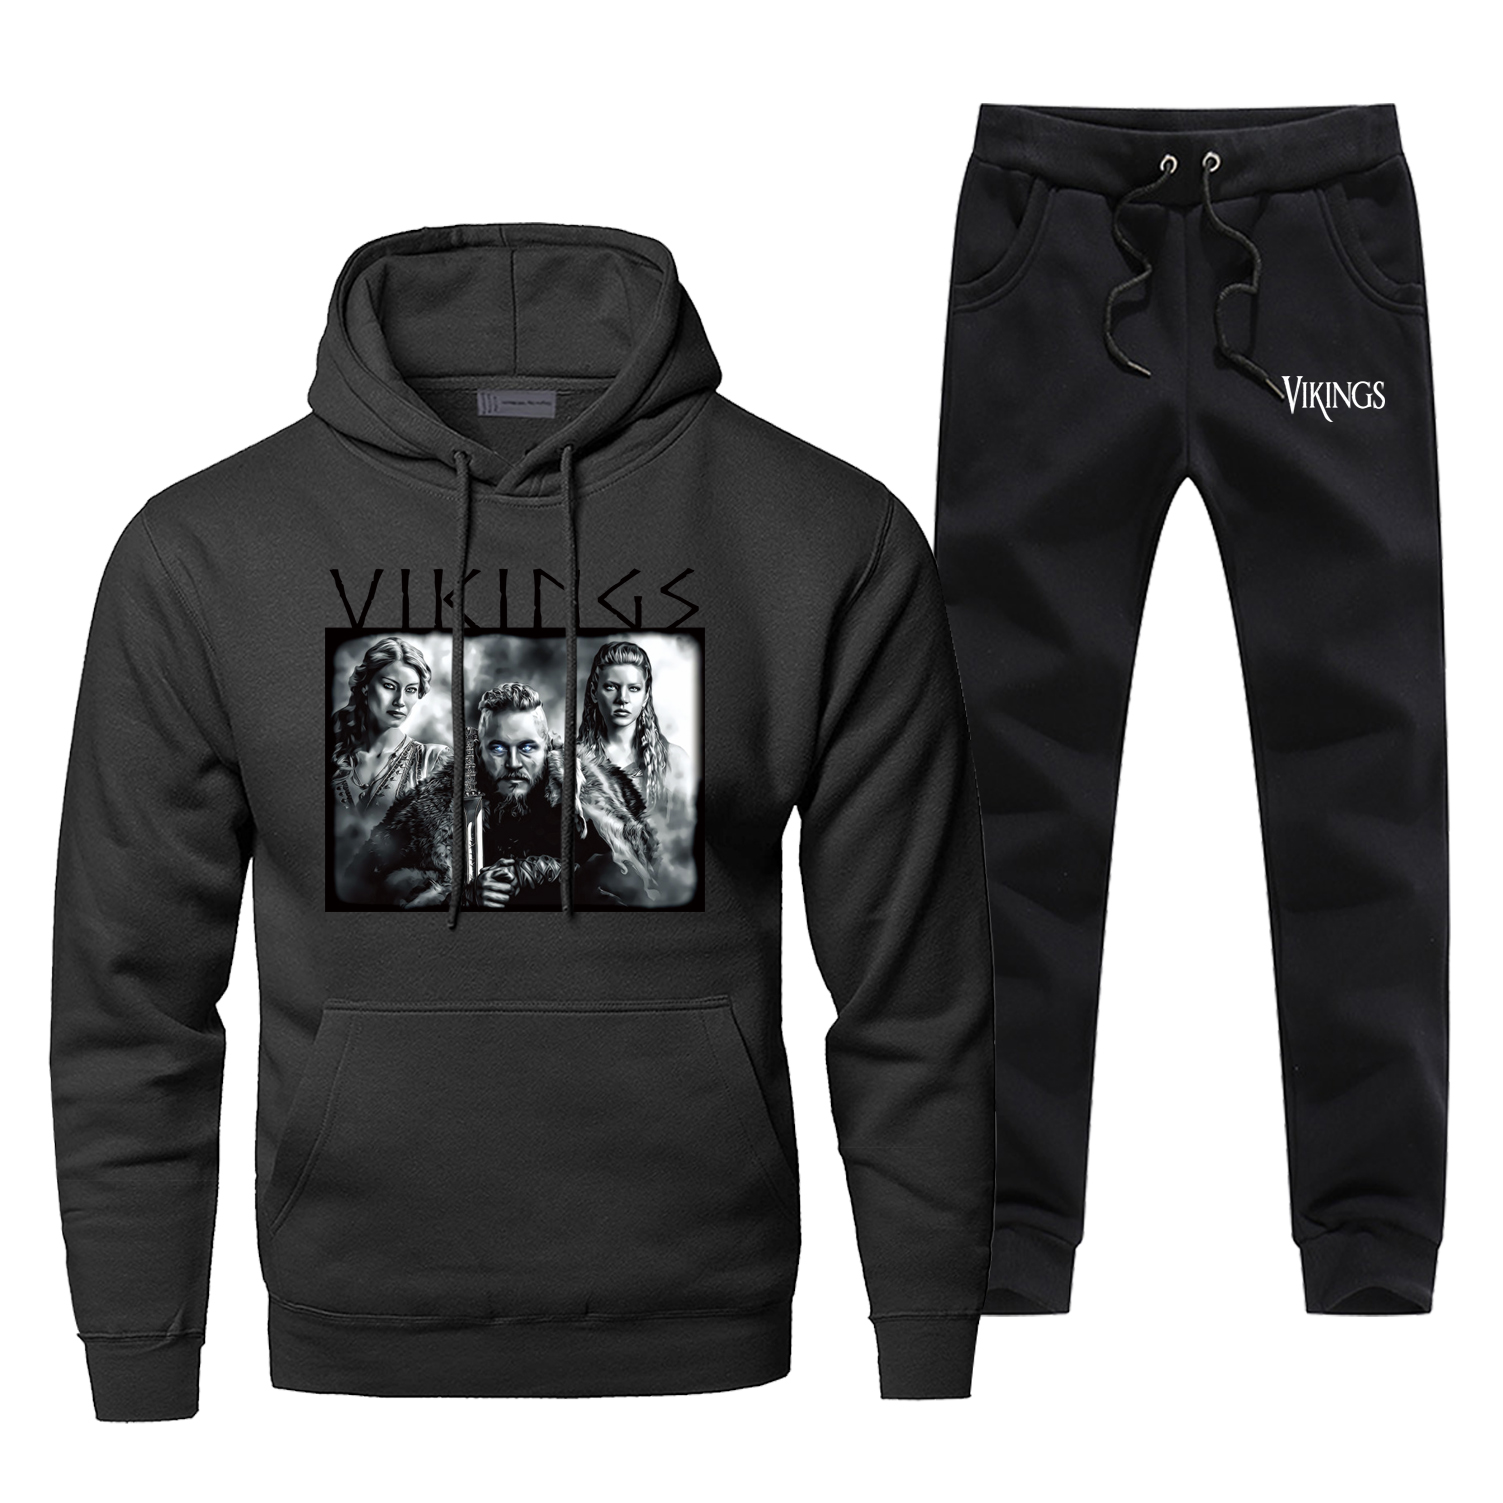 TV Show Vikings Men's Full Suit Tracksuit The Viking Winter Bodywarmer Pants Sweatshirt Comfortable Lagertha Men's Jogging